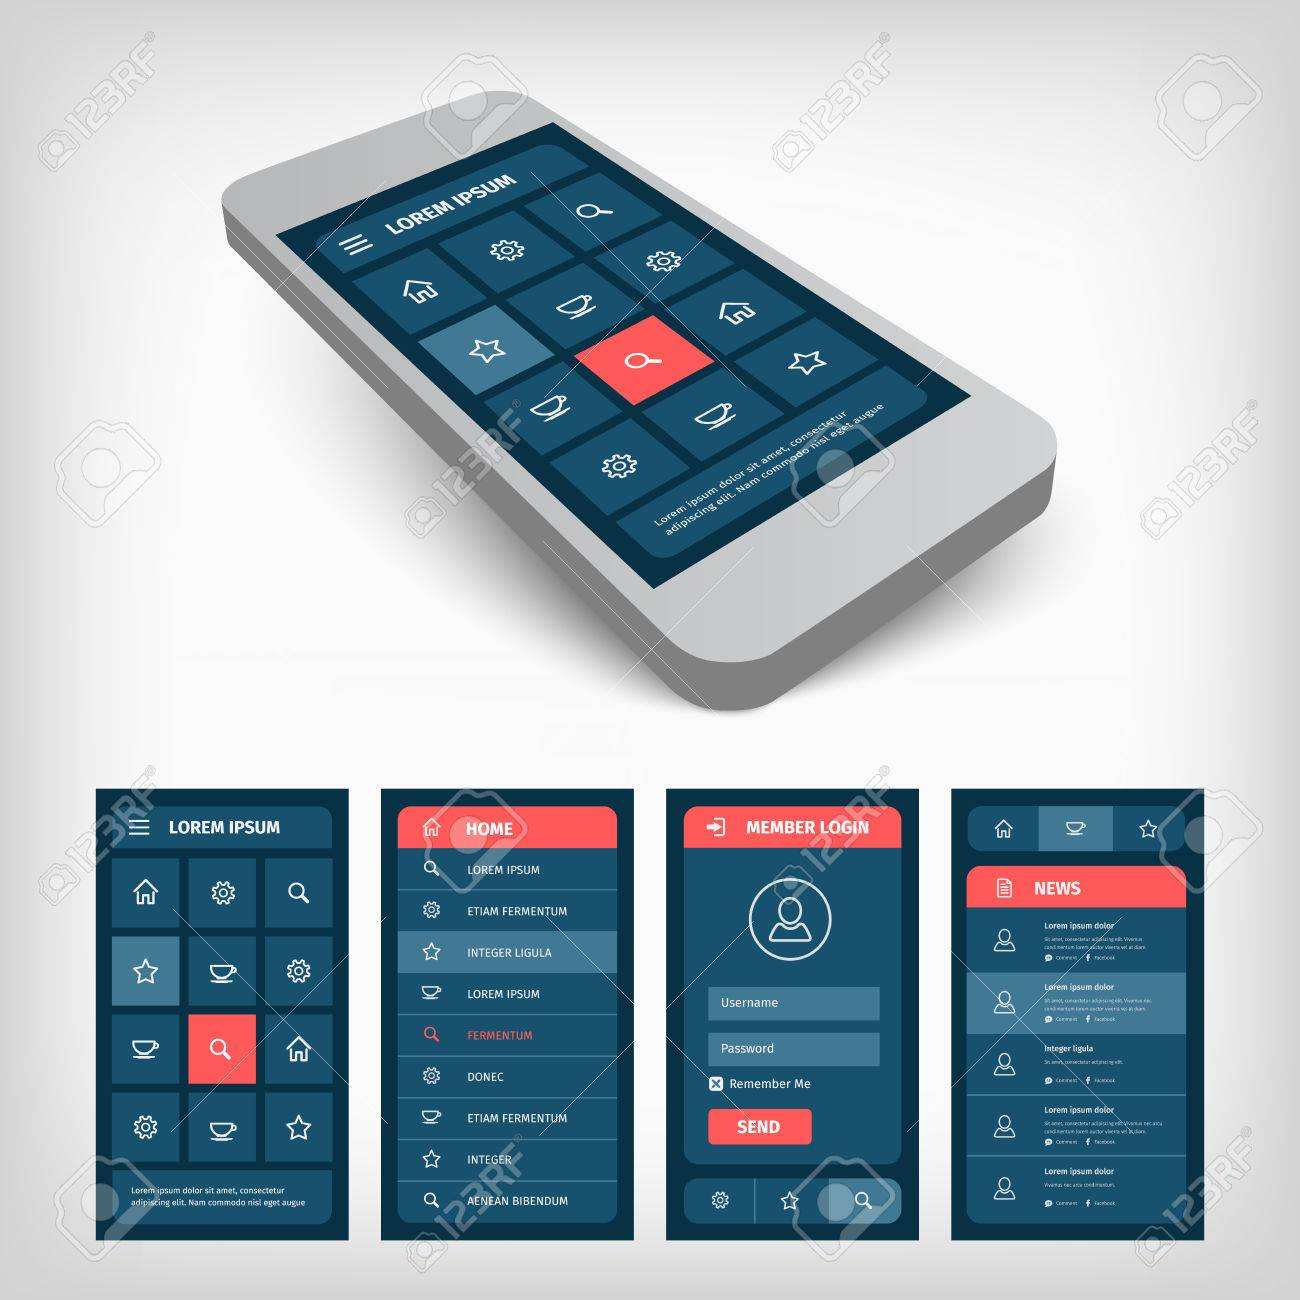 Mobile Phone With User Interface Design Template 3d Vector Illustration Royalty Free Cliparts Vectors And Stock Illustration Image 37835963